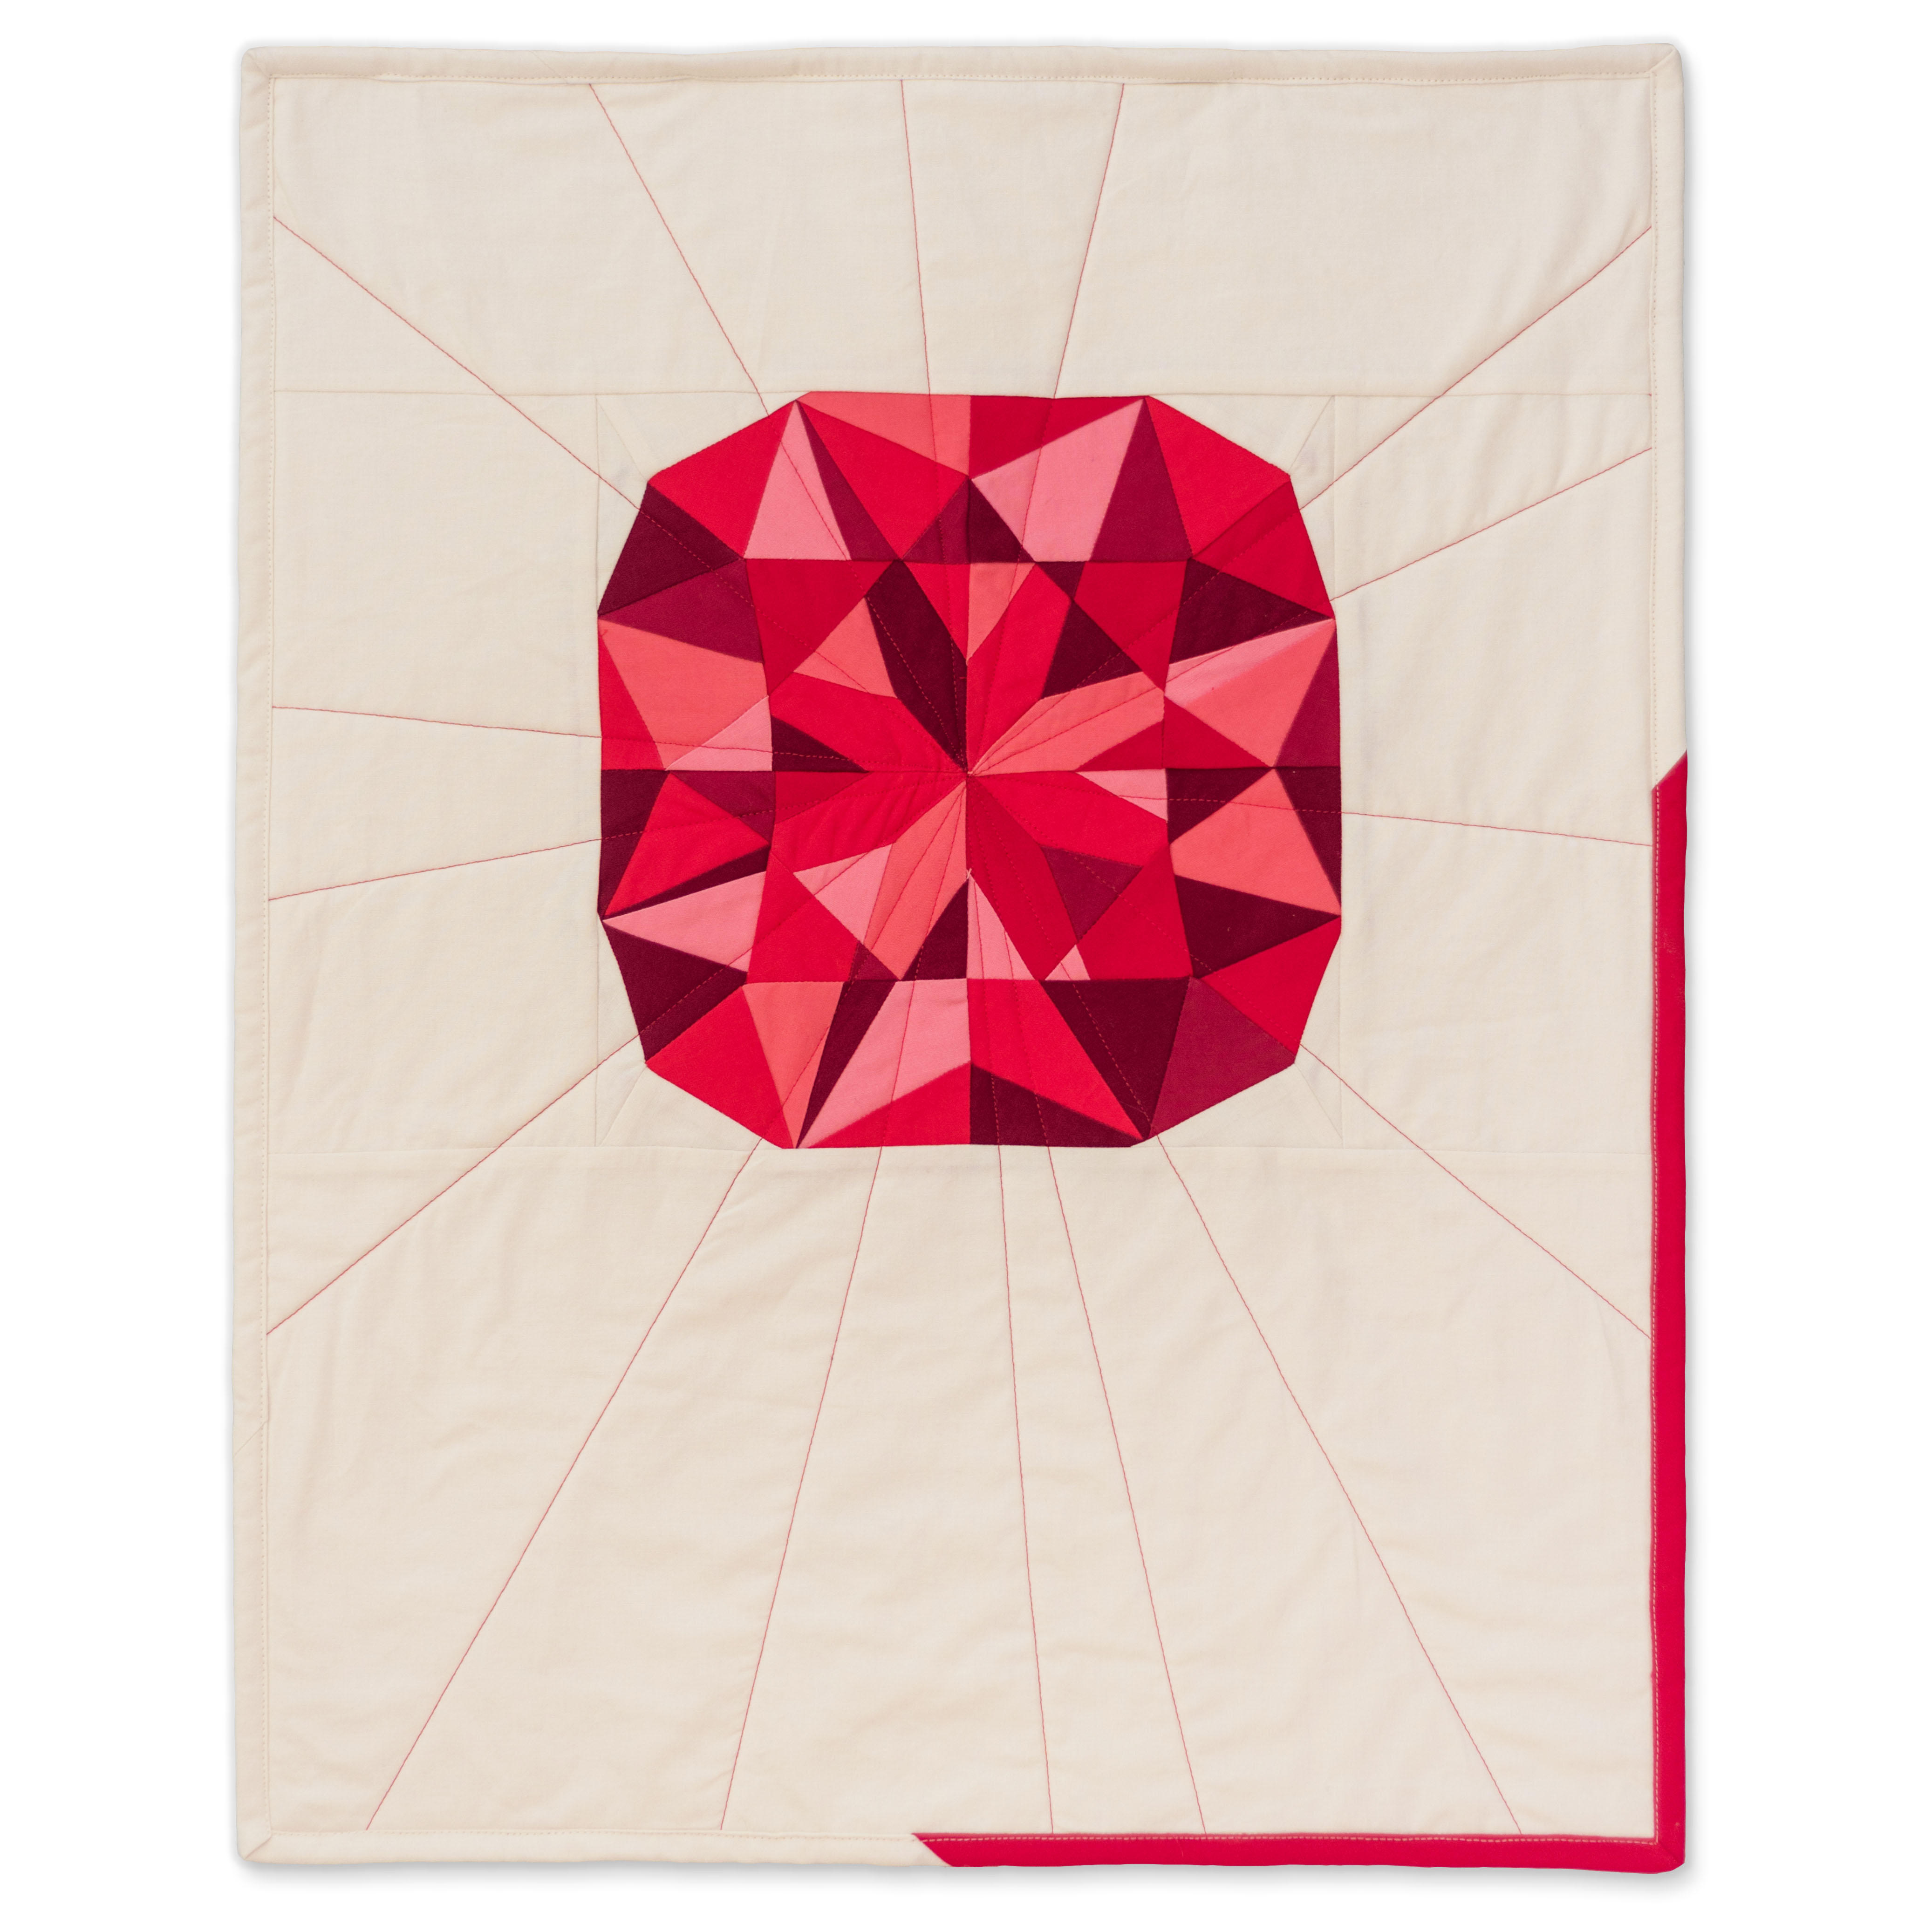 "<b>Garnet</b><br>20"" x 25""<br>Cotton, cotton batting<br><a href=""mailto:hello@3rdstoryworkshop.com?Subject=Garnet%20Gemology"" target=""_top"" rel=""noopener noreferrer"">Inquire</a>"